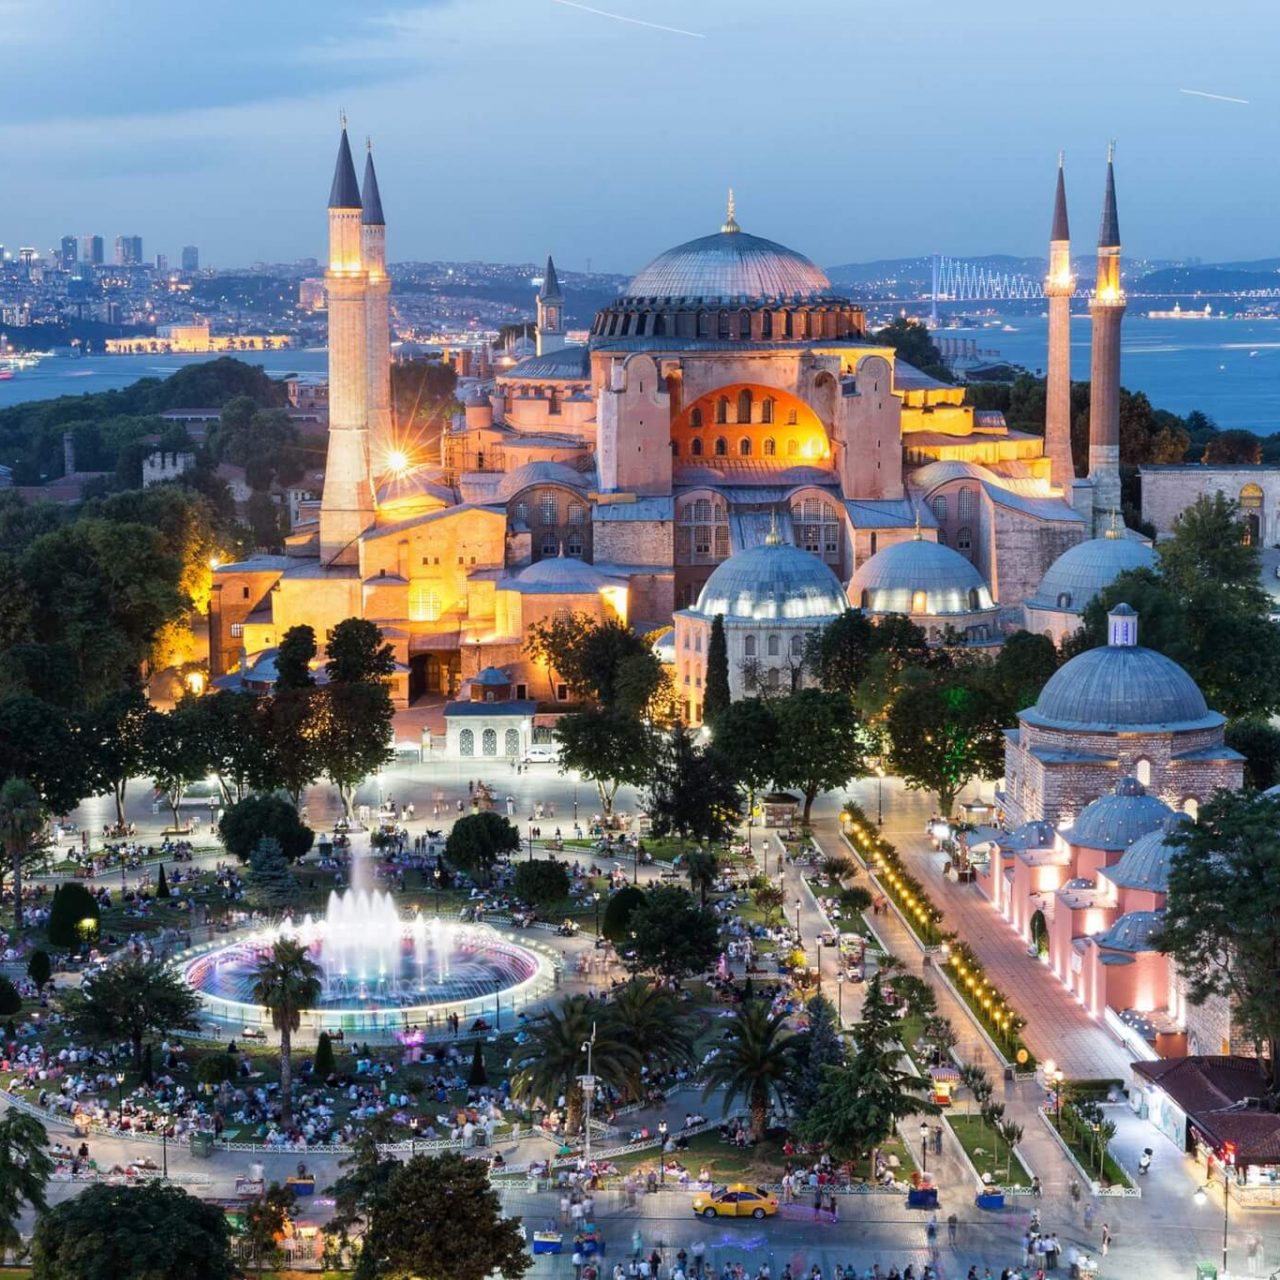 http://travelicious.bold-themes.com/main-demo/wp-content/uploads/sites/2/2018/09/destination-istanbul-02-1280x1280.jpg